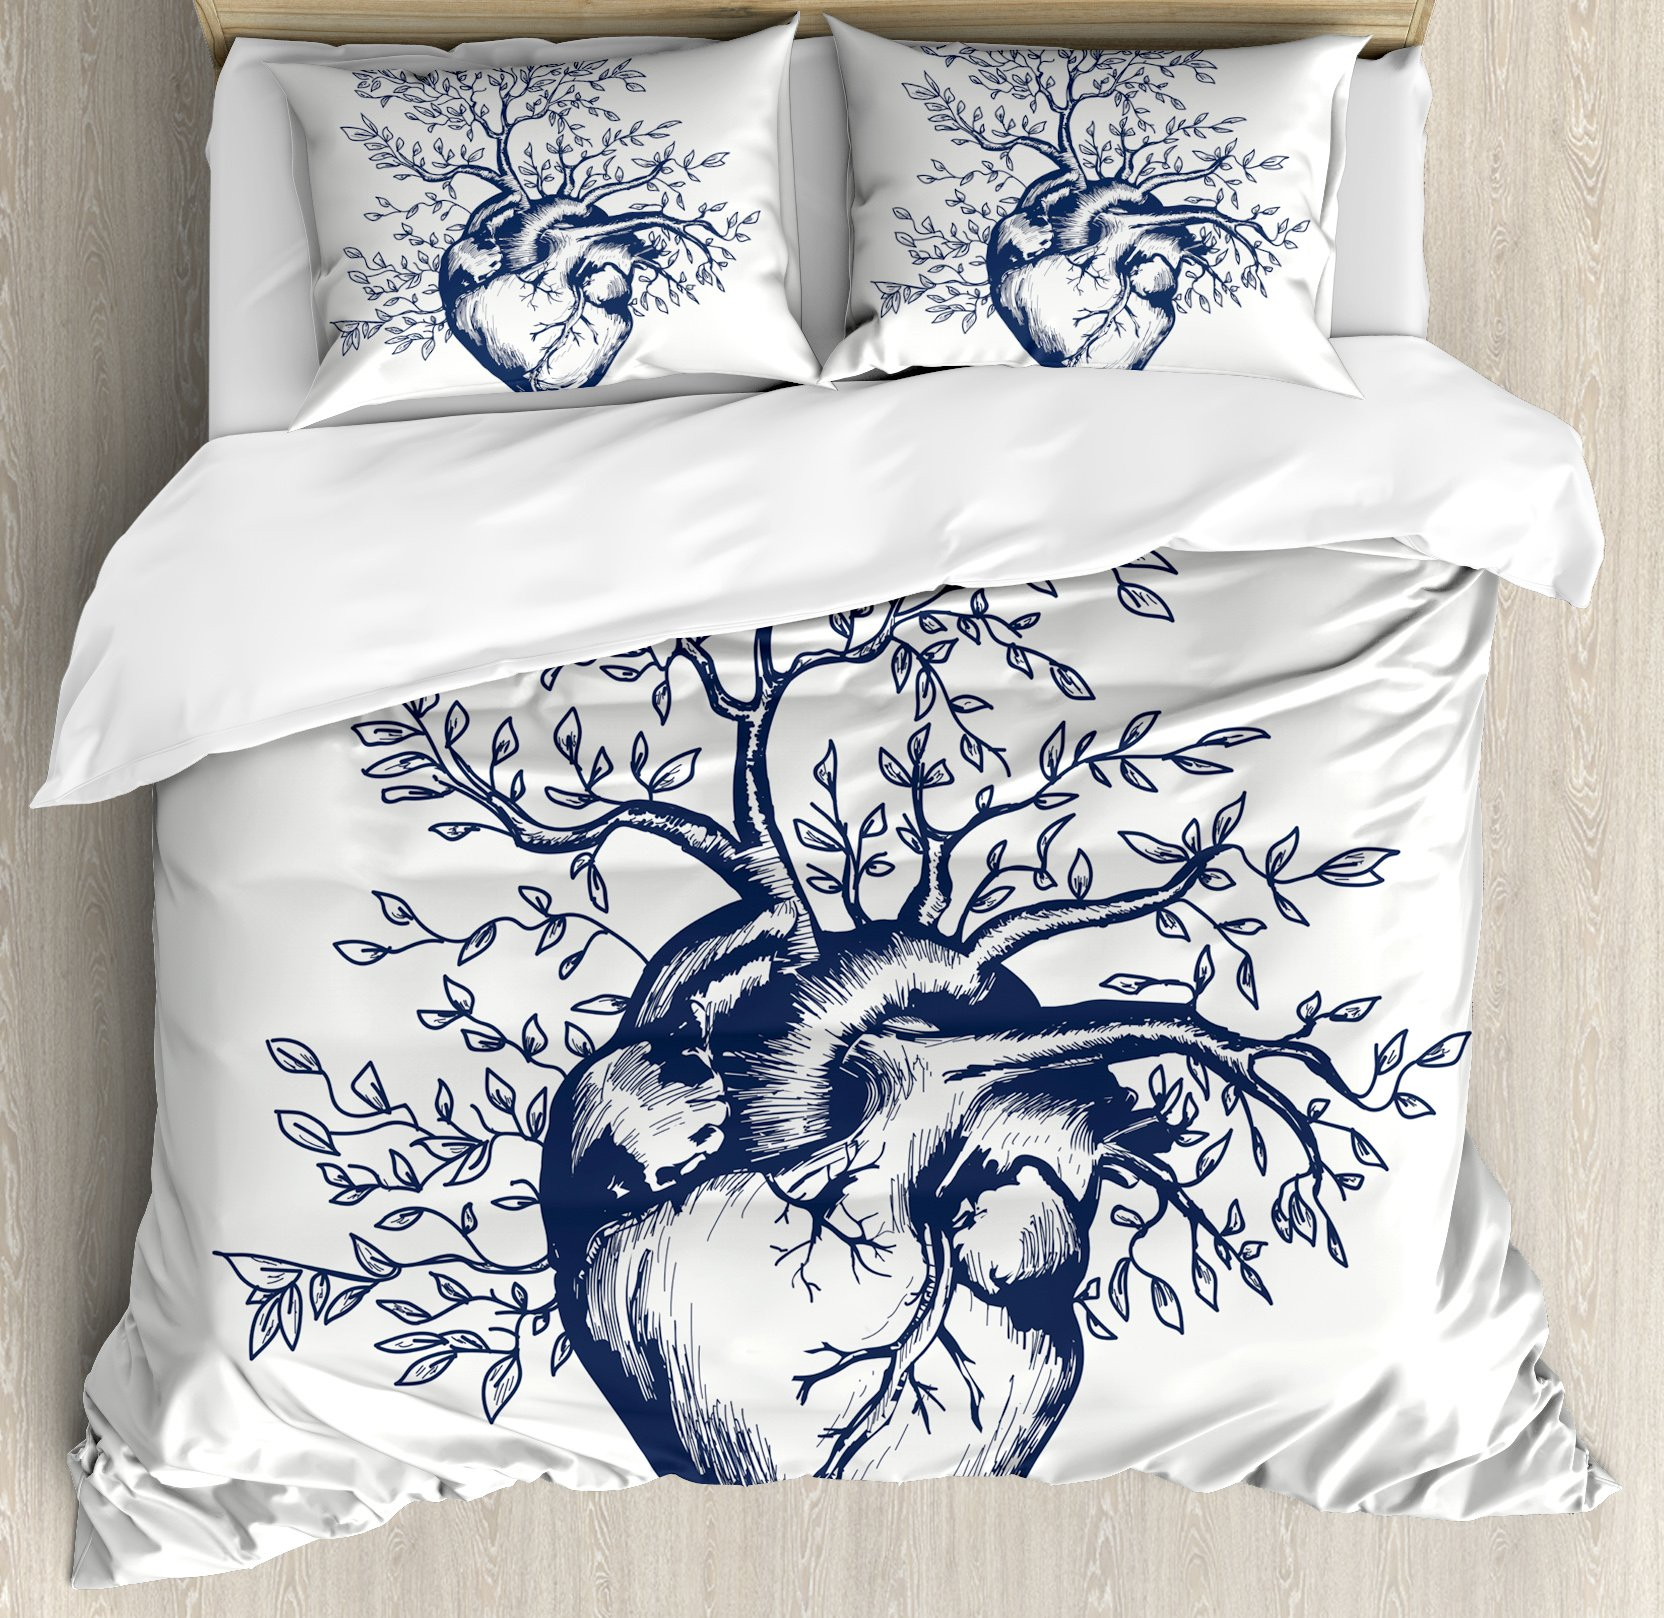 Surrealistic Queen Size Duvet Cover Set by Ambesonne, Human Heart Blooming with Tree Leaves Anatomy of Life and Love Concept, Decorative 3 Piece Bedding Set with 2 Pillow Shams, Dark Blue Cream